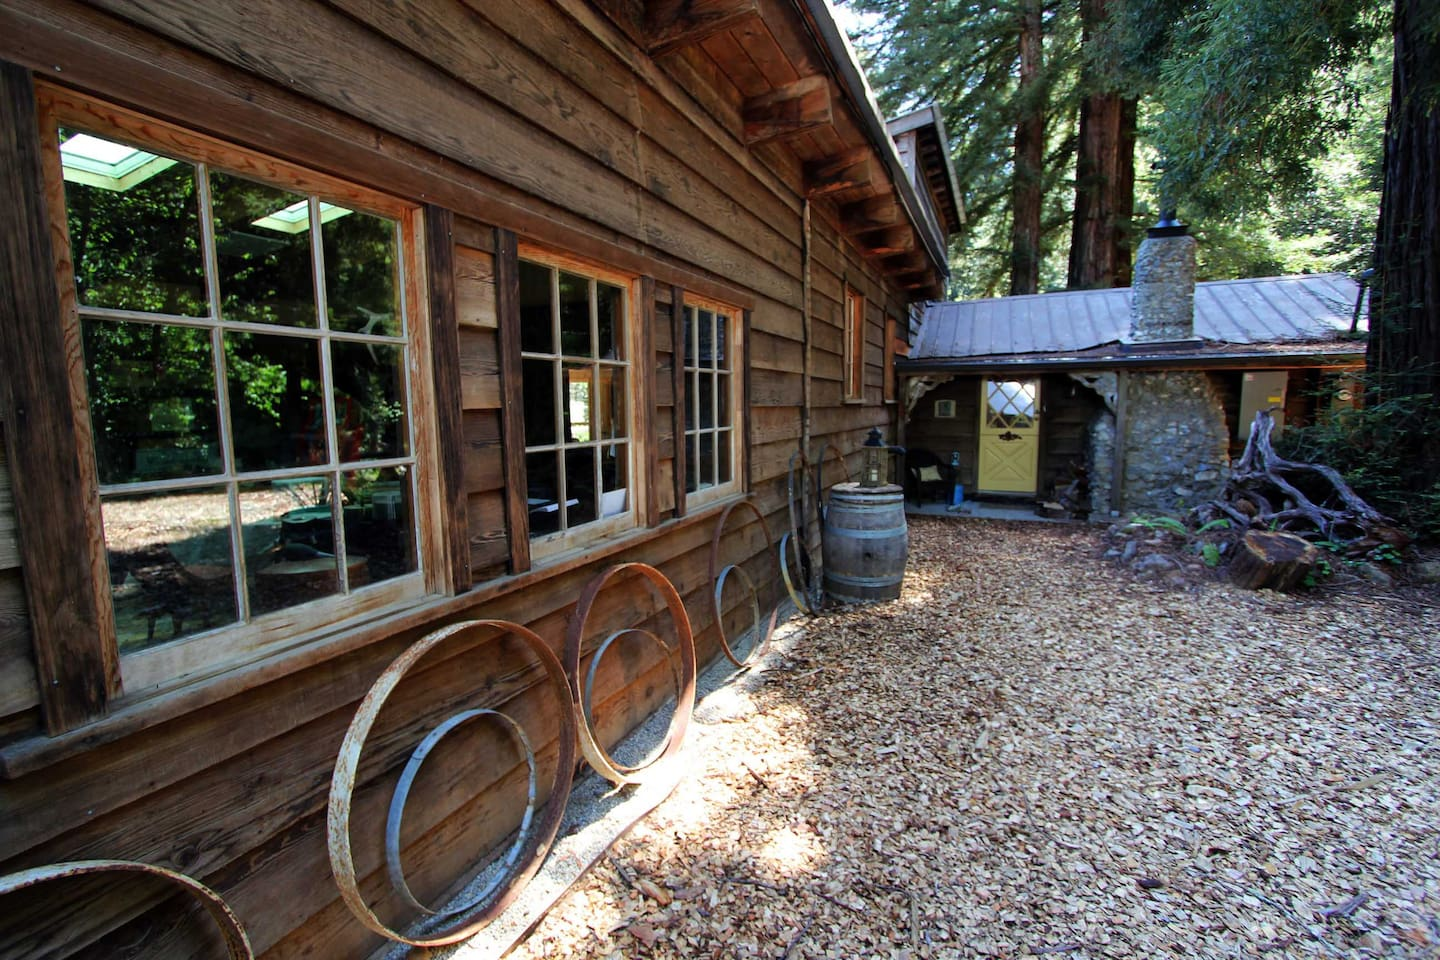 Rustic Ranch House built from redwood cut on the property in 1931.